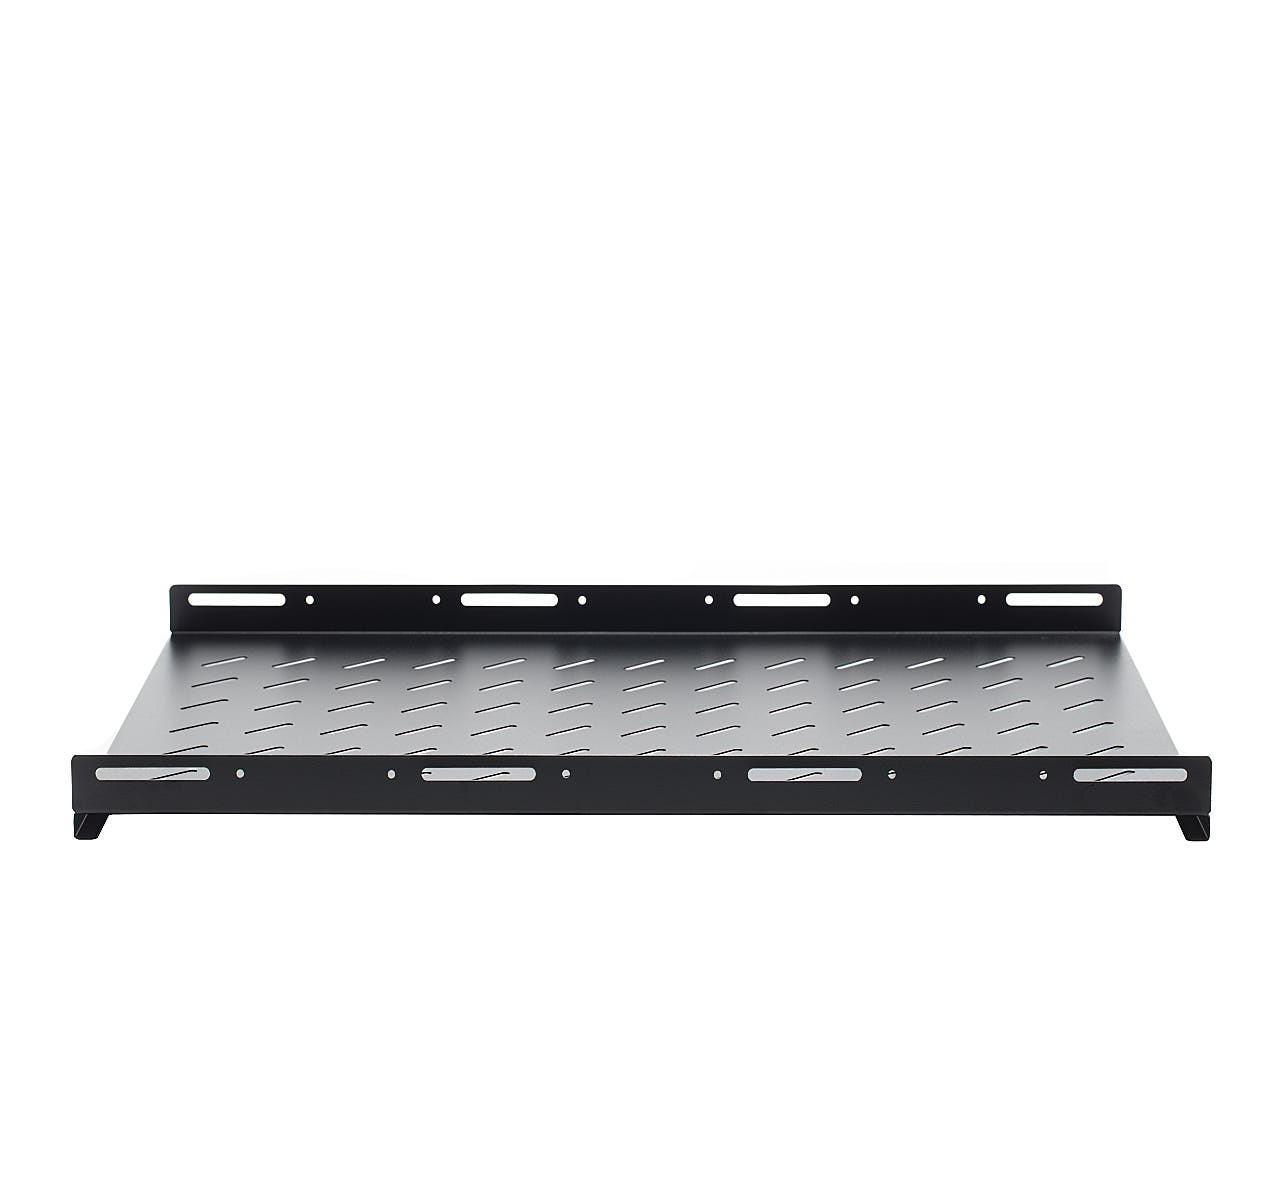 Image for 1RU Fixed Shelf for 1000mm Deep Free Standing Server Rack CX Computer Superstore